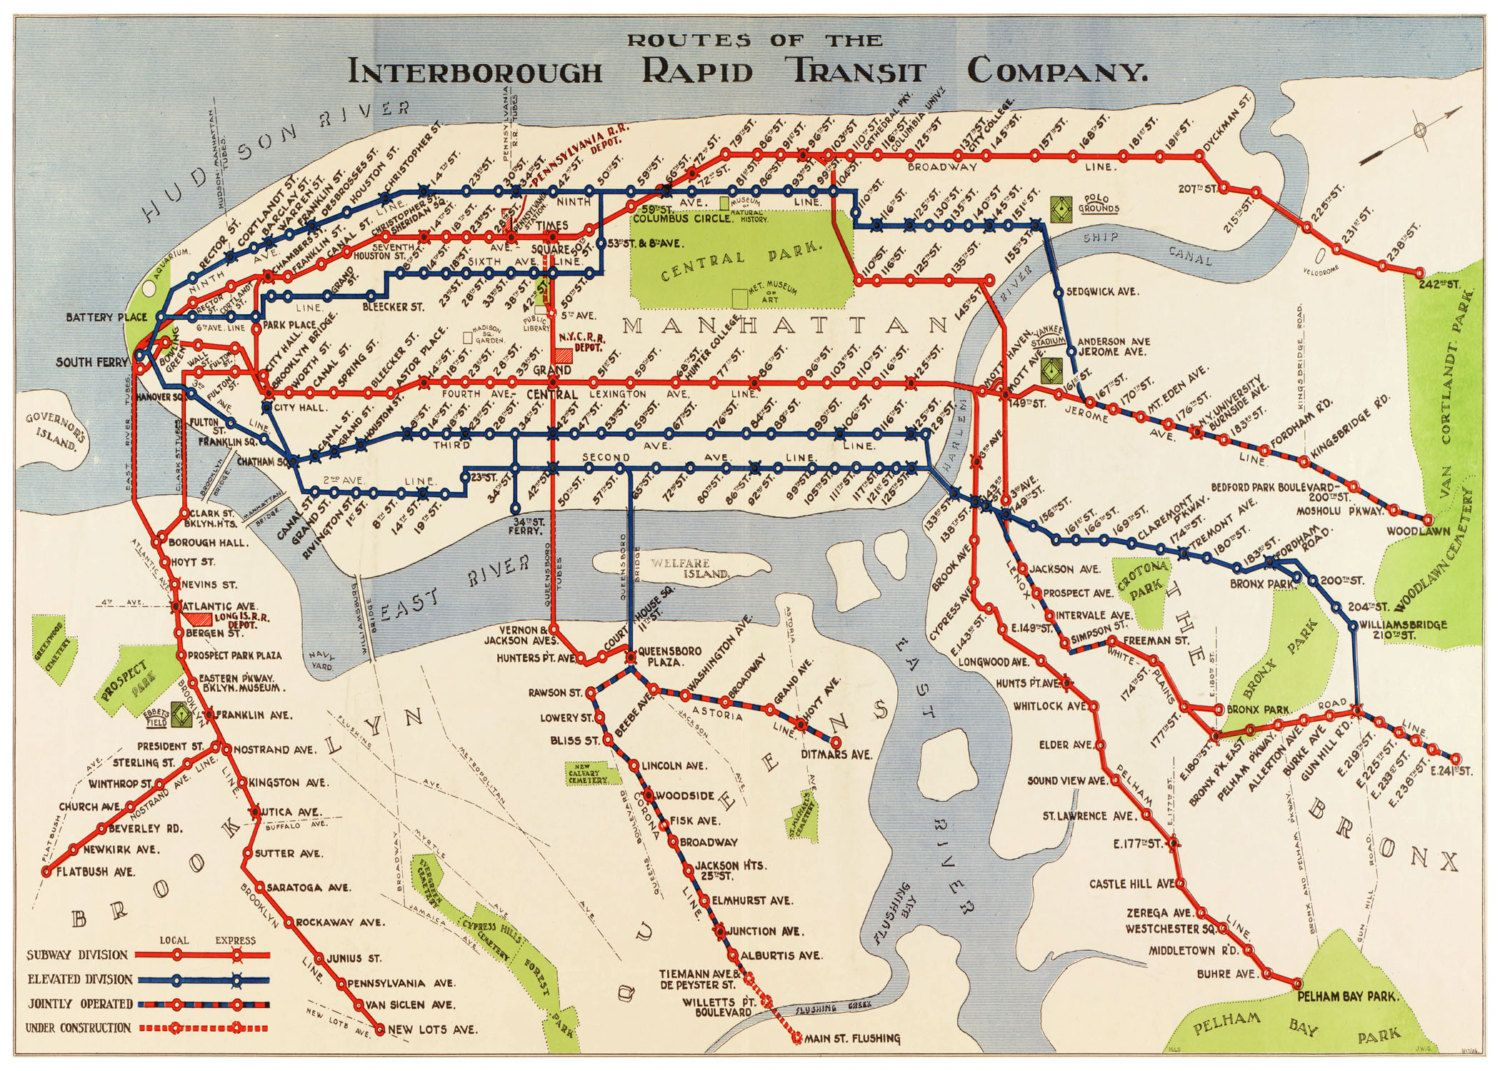 Old New York City Subway Map Showing The Old 3rd Ave And 2nd Ave